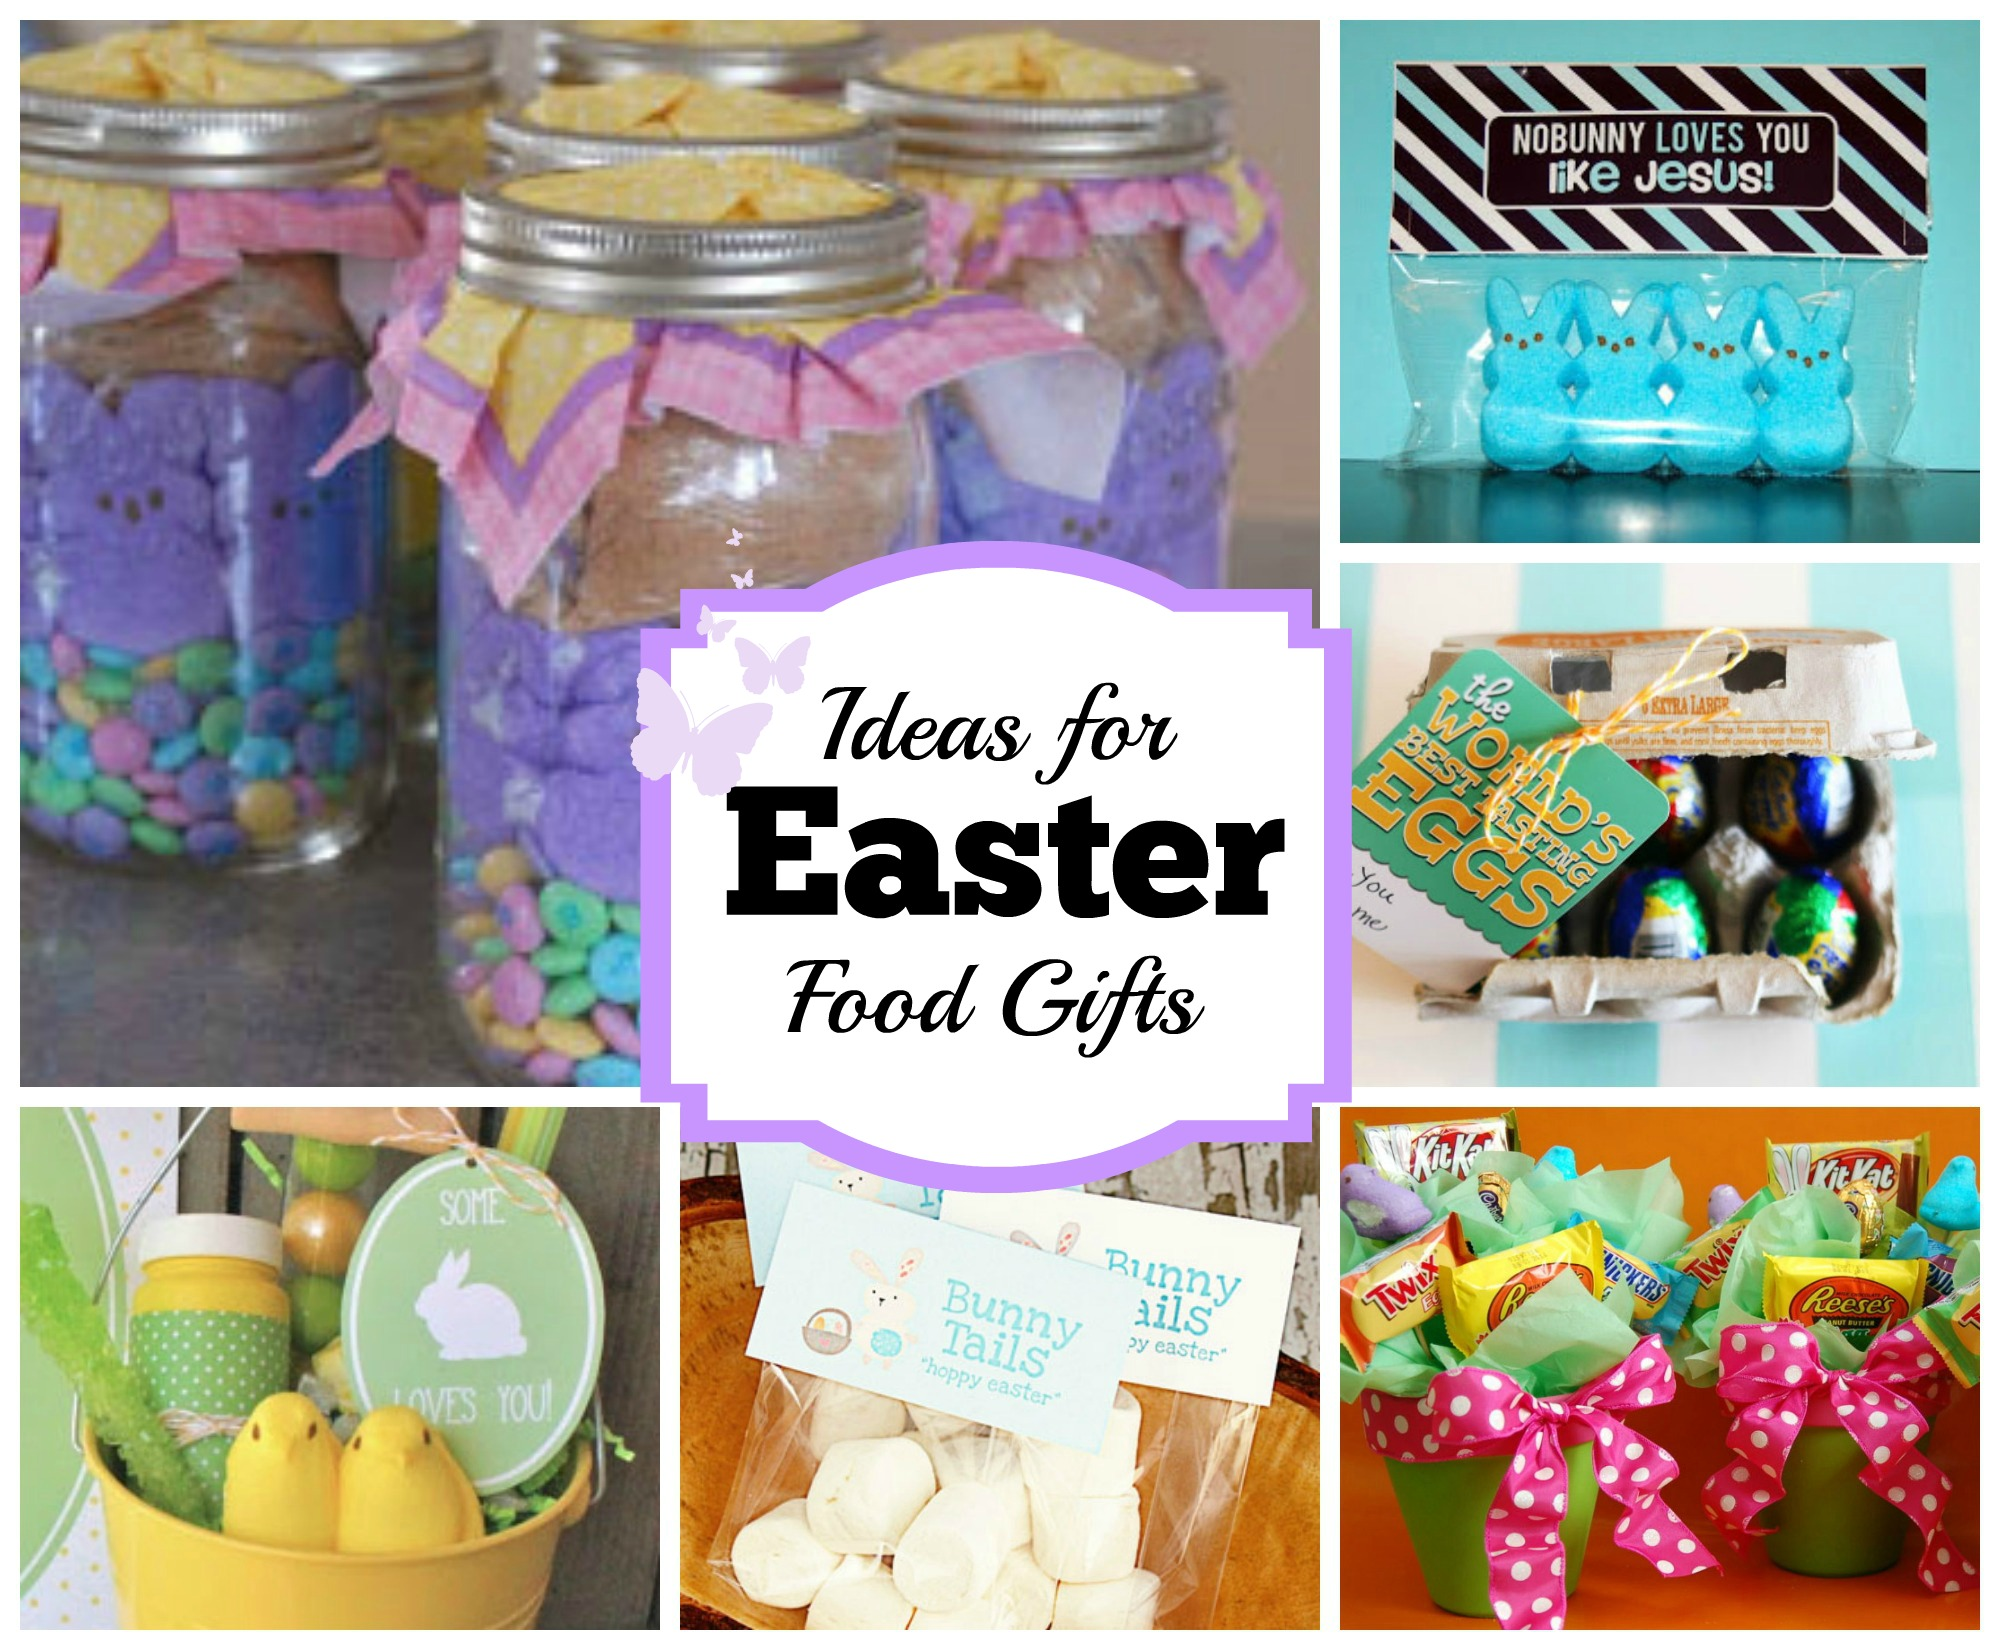 Diy easter food gift ideas celebrating holidays easter diy food gift ideas negle Images